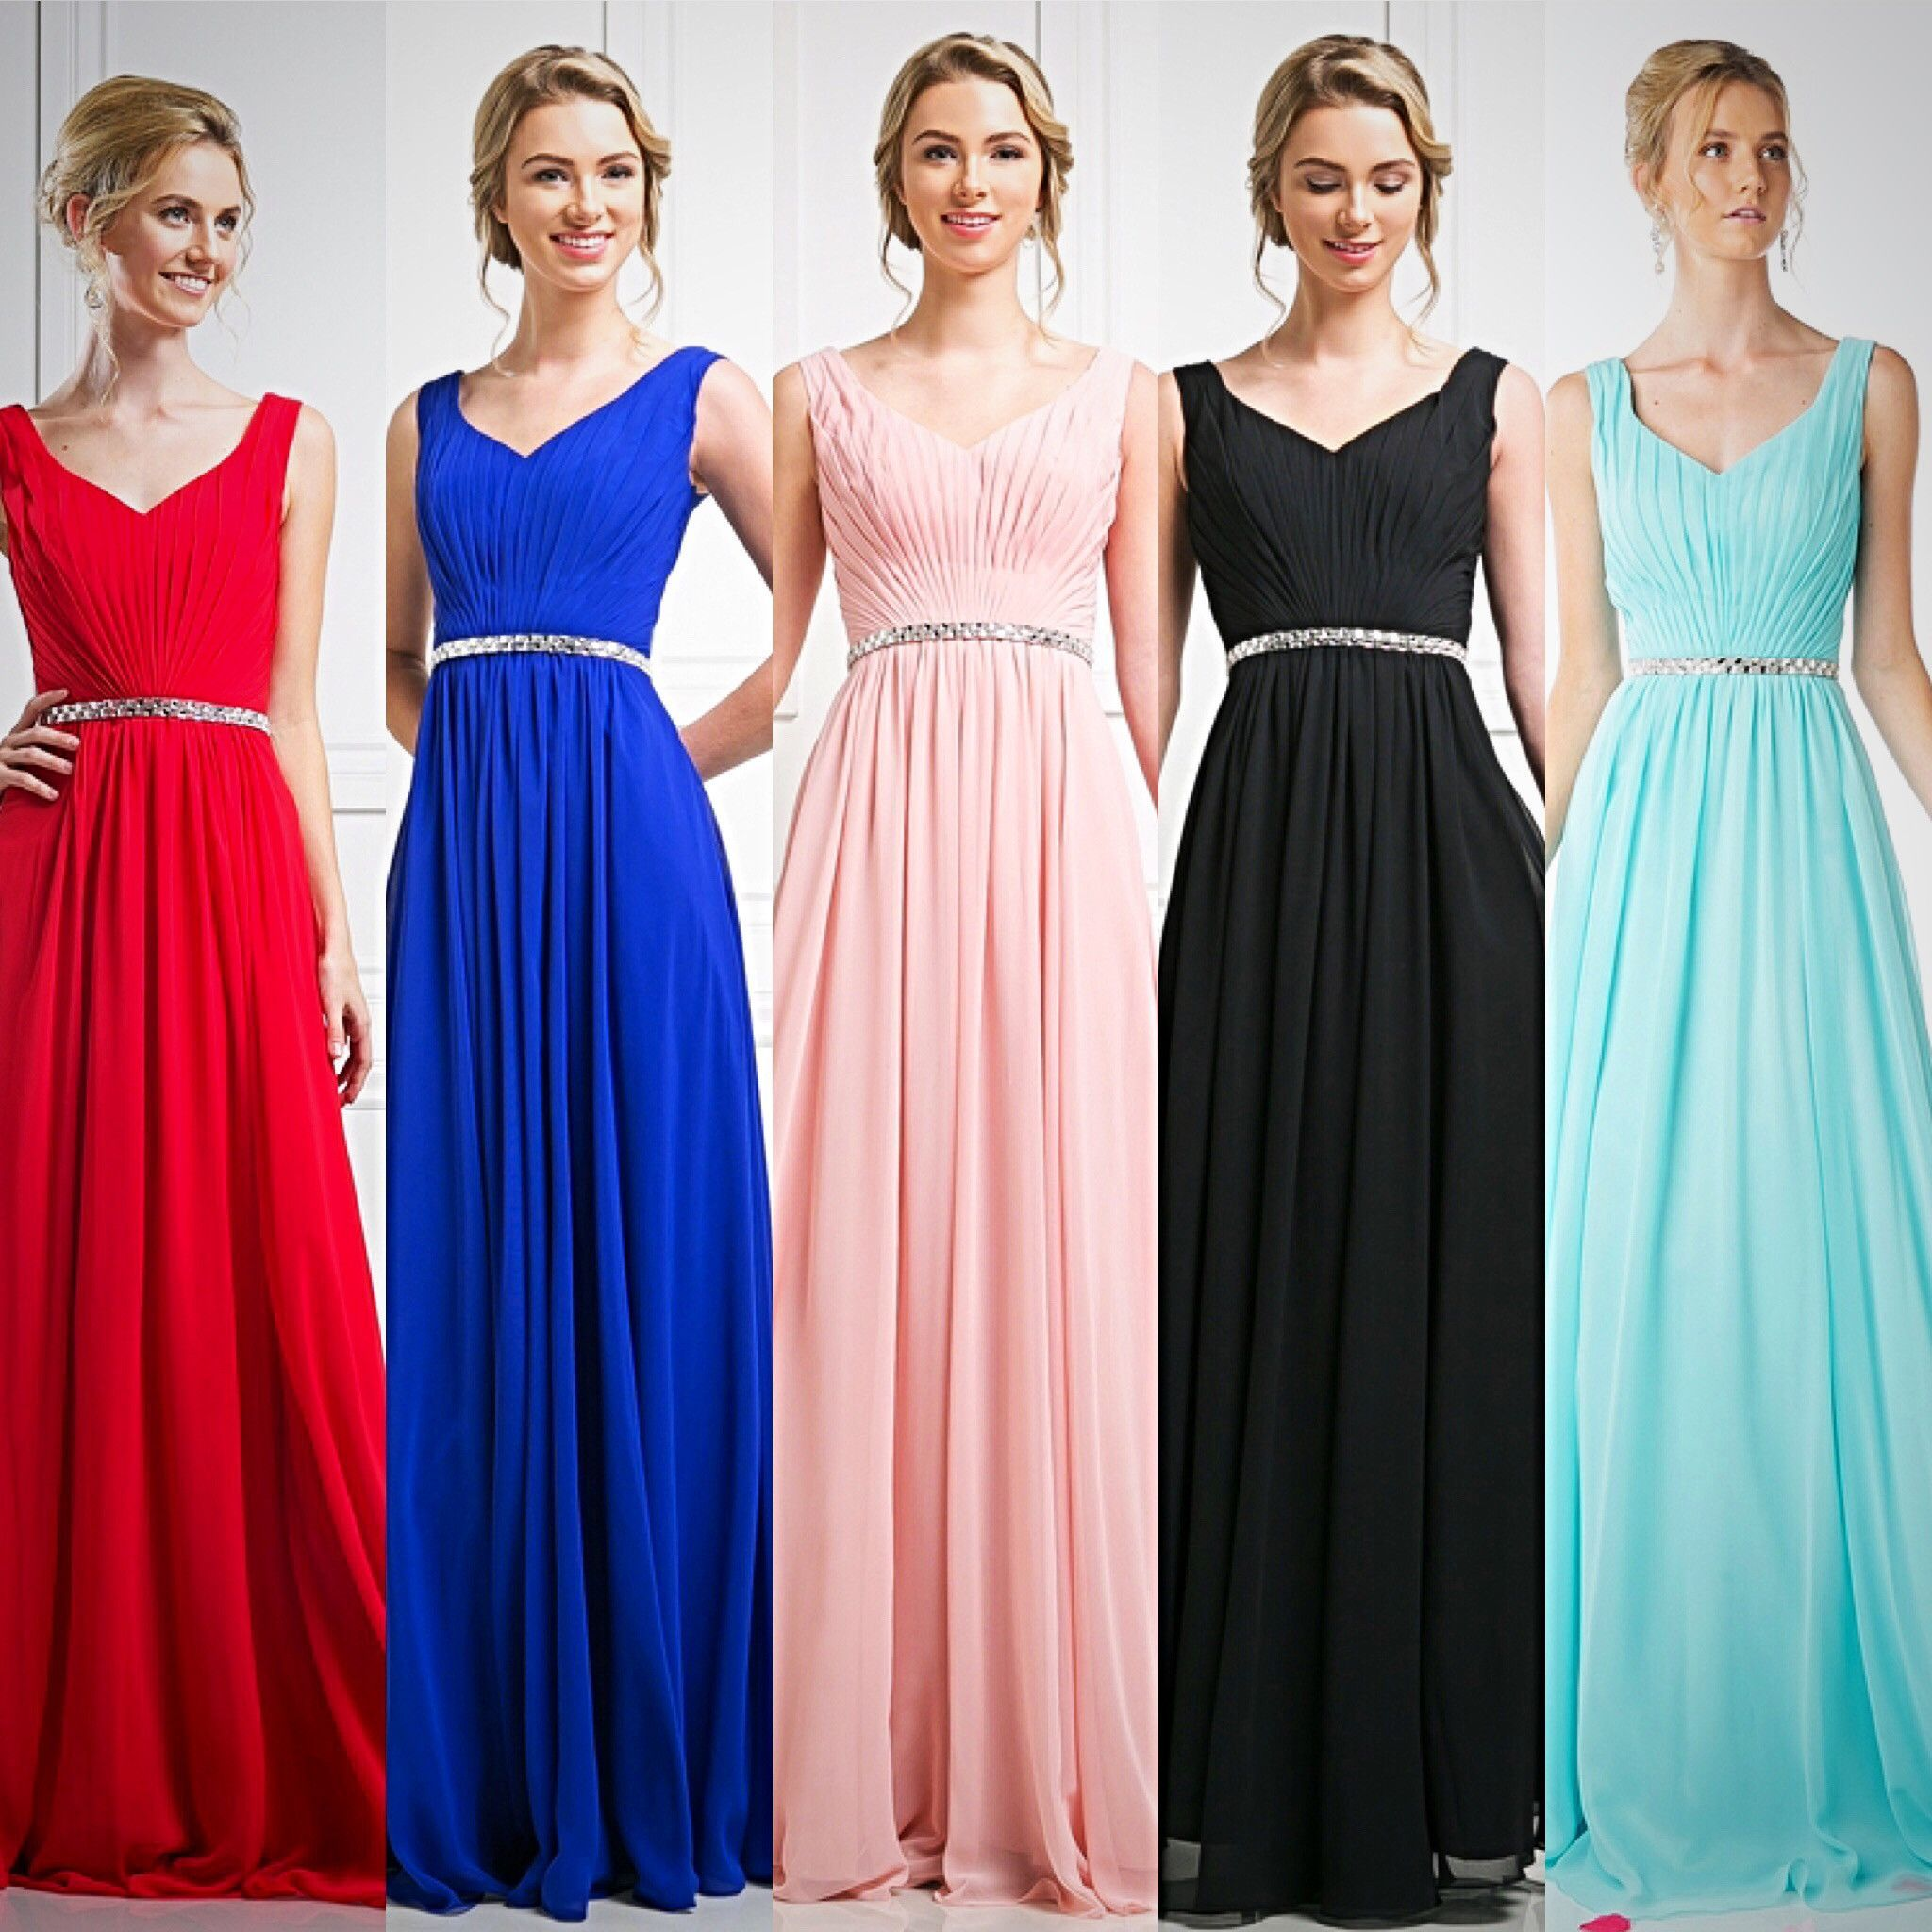 Affordable pleated classy Party Prom Bridesmaid dress in 5 colors 4 ...